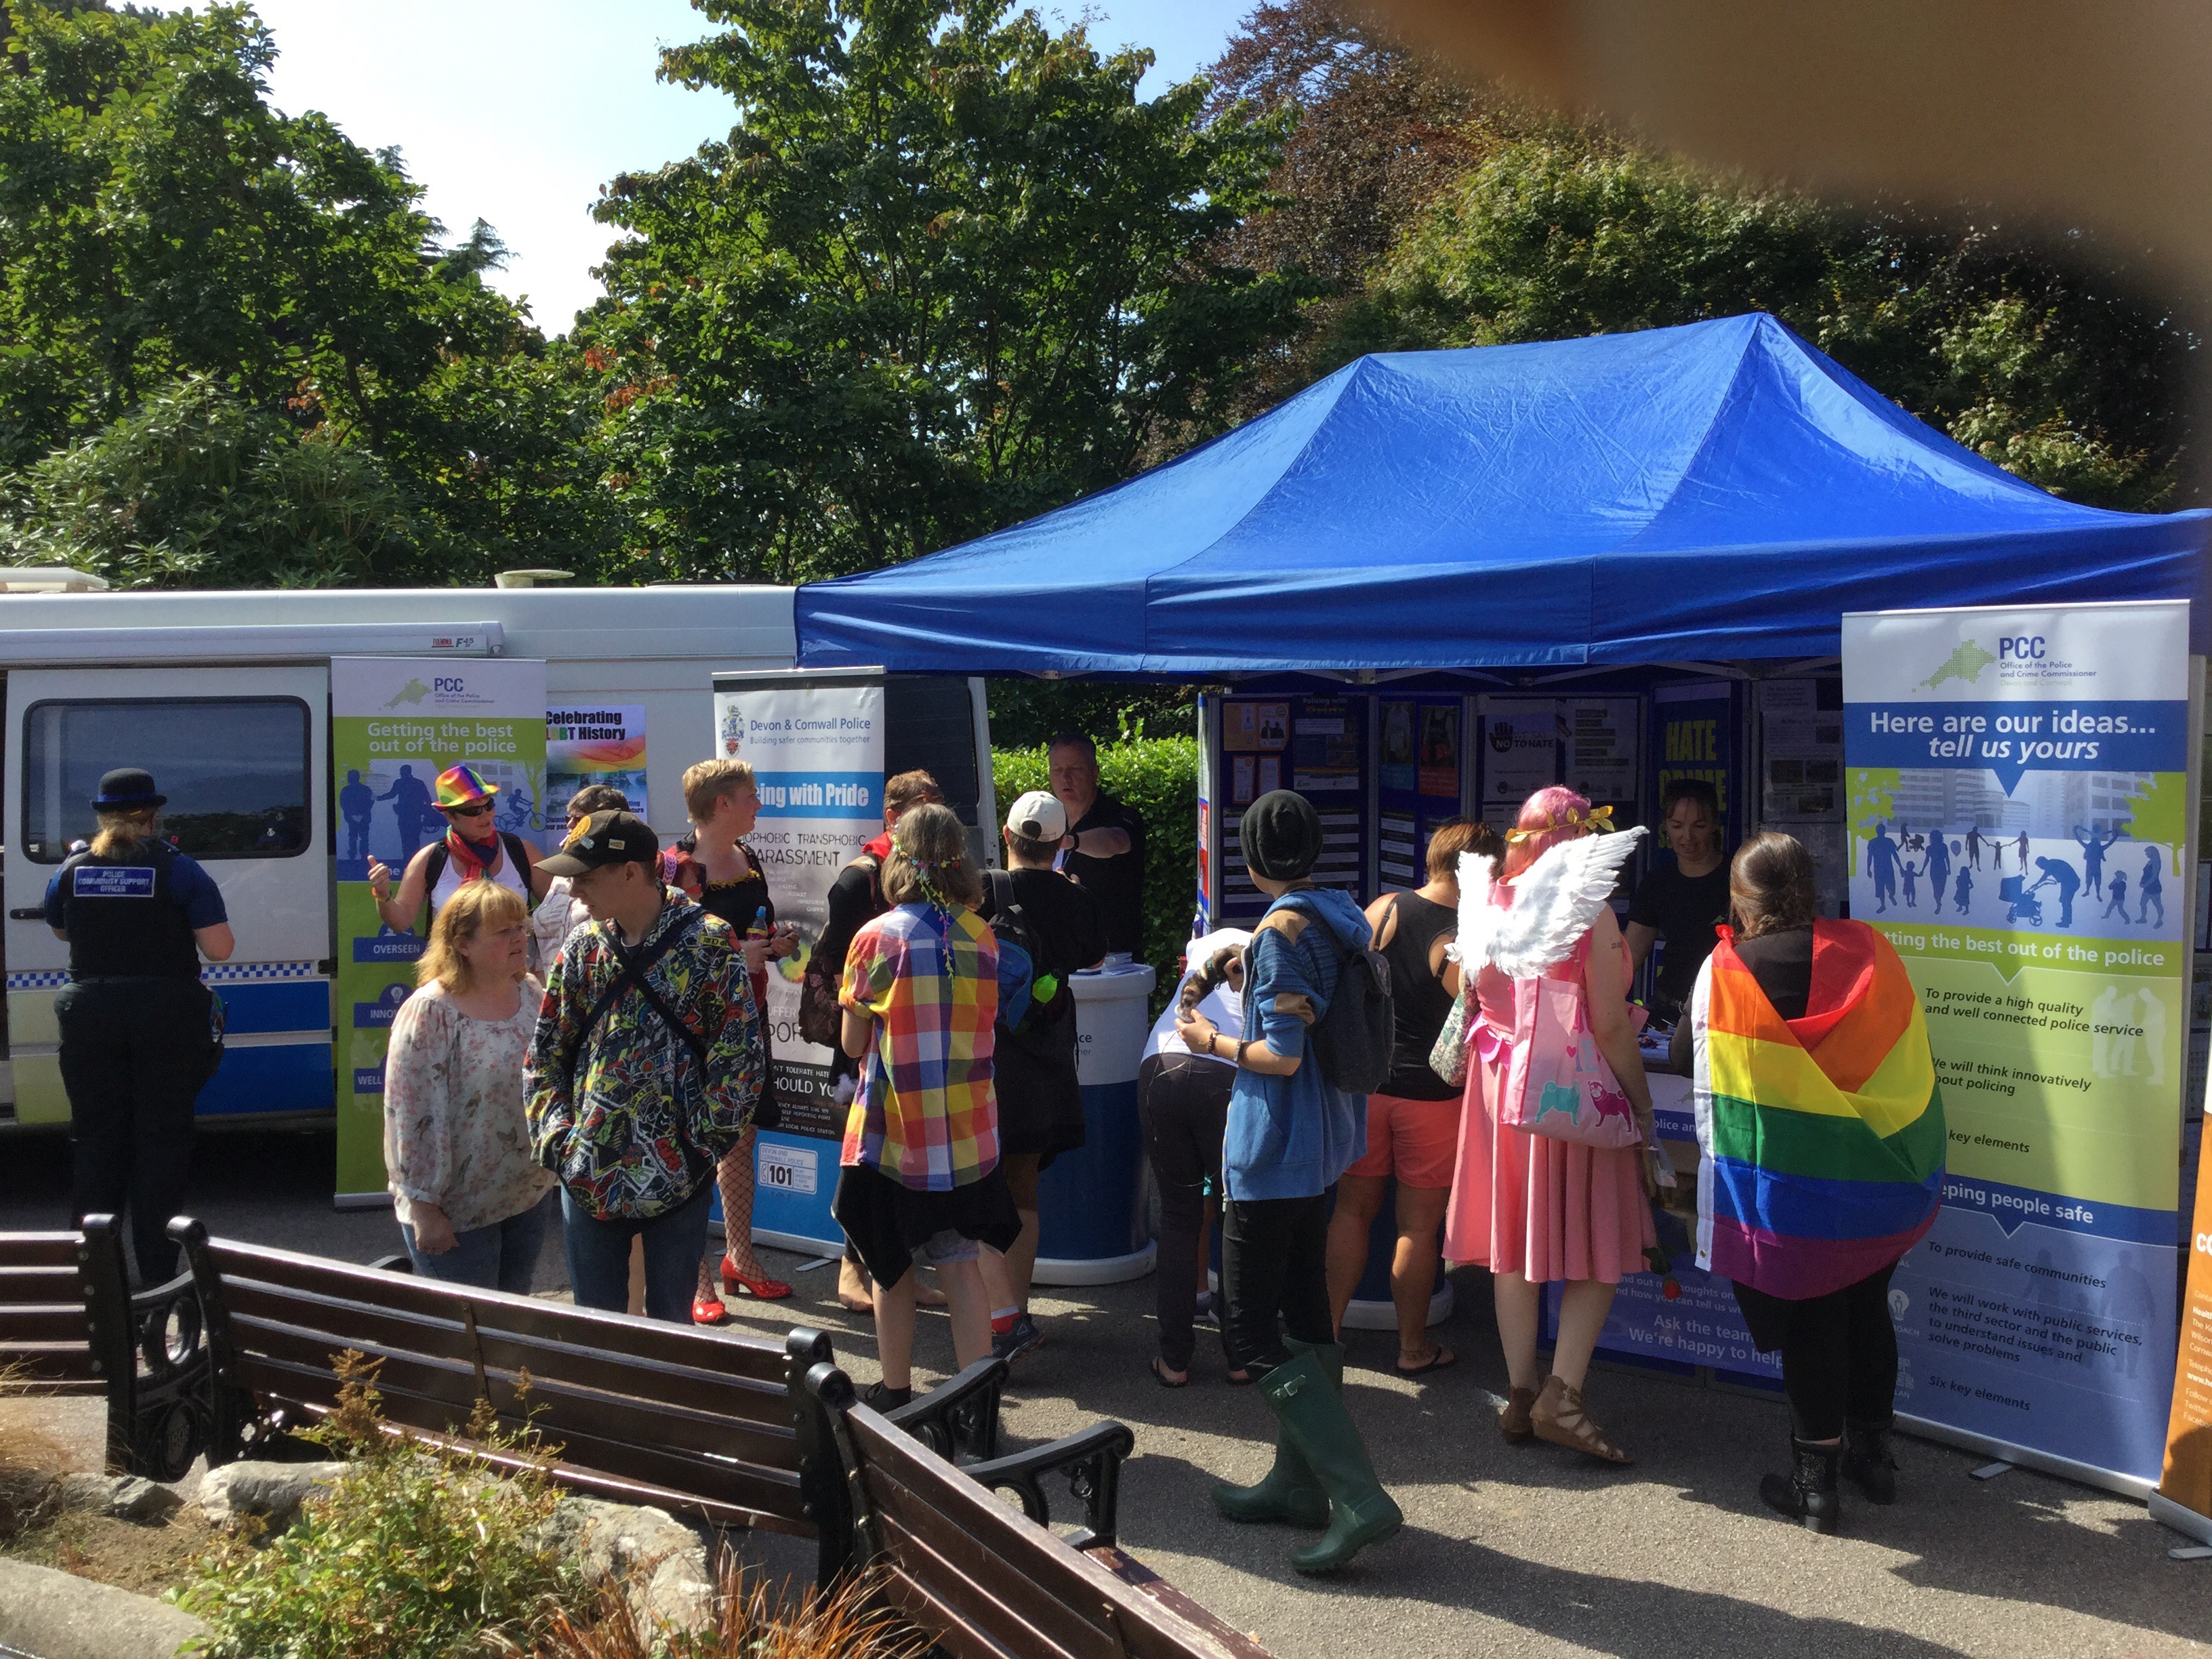 Tony Hogg takes part in Exeter Pride 2015